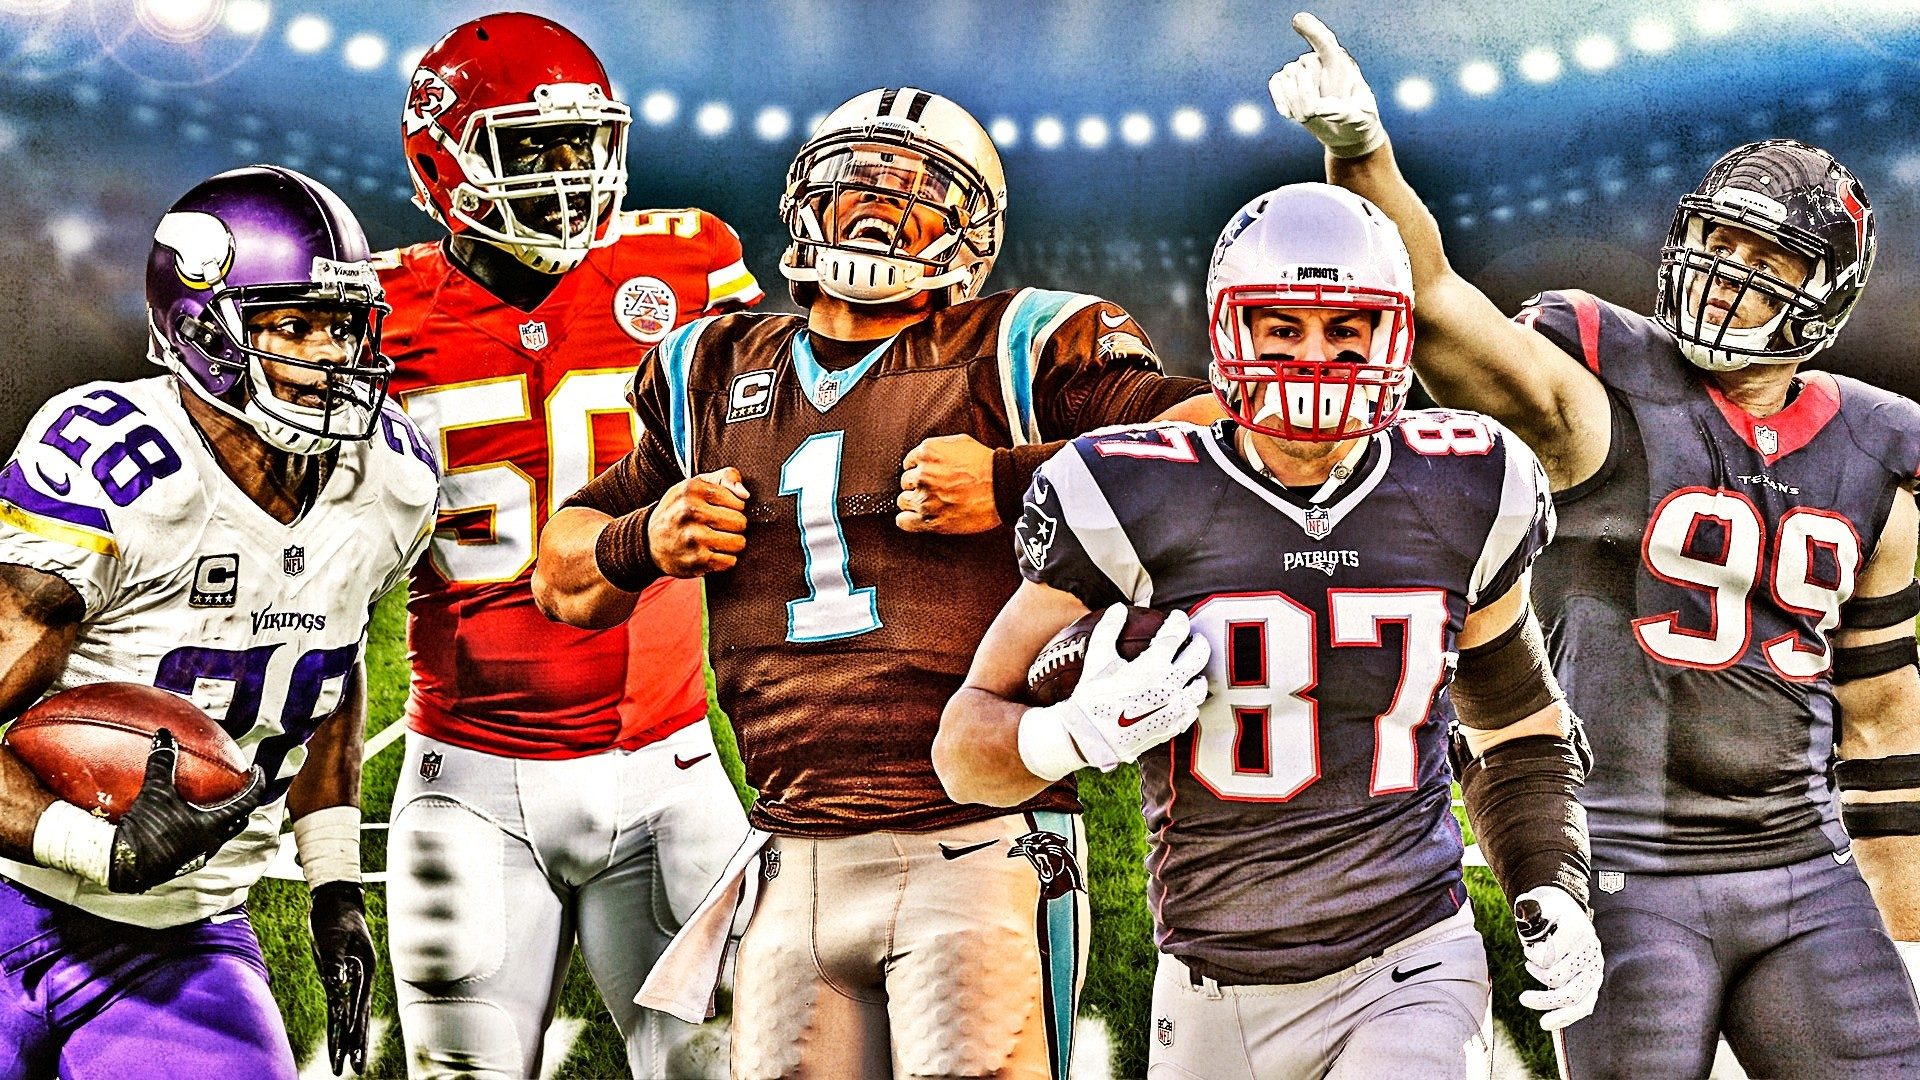 Nfl Football Teams Wallpapers 61 Images